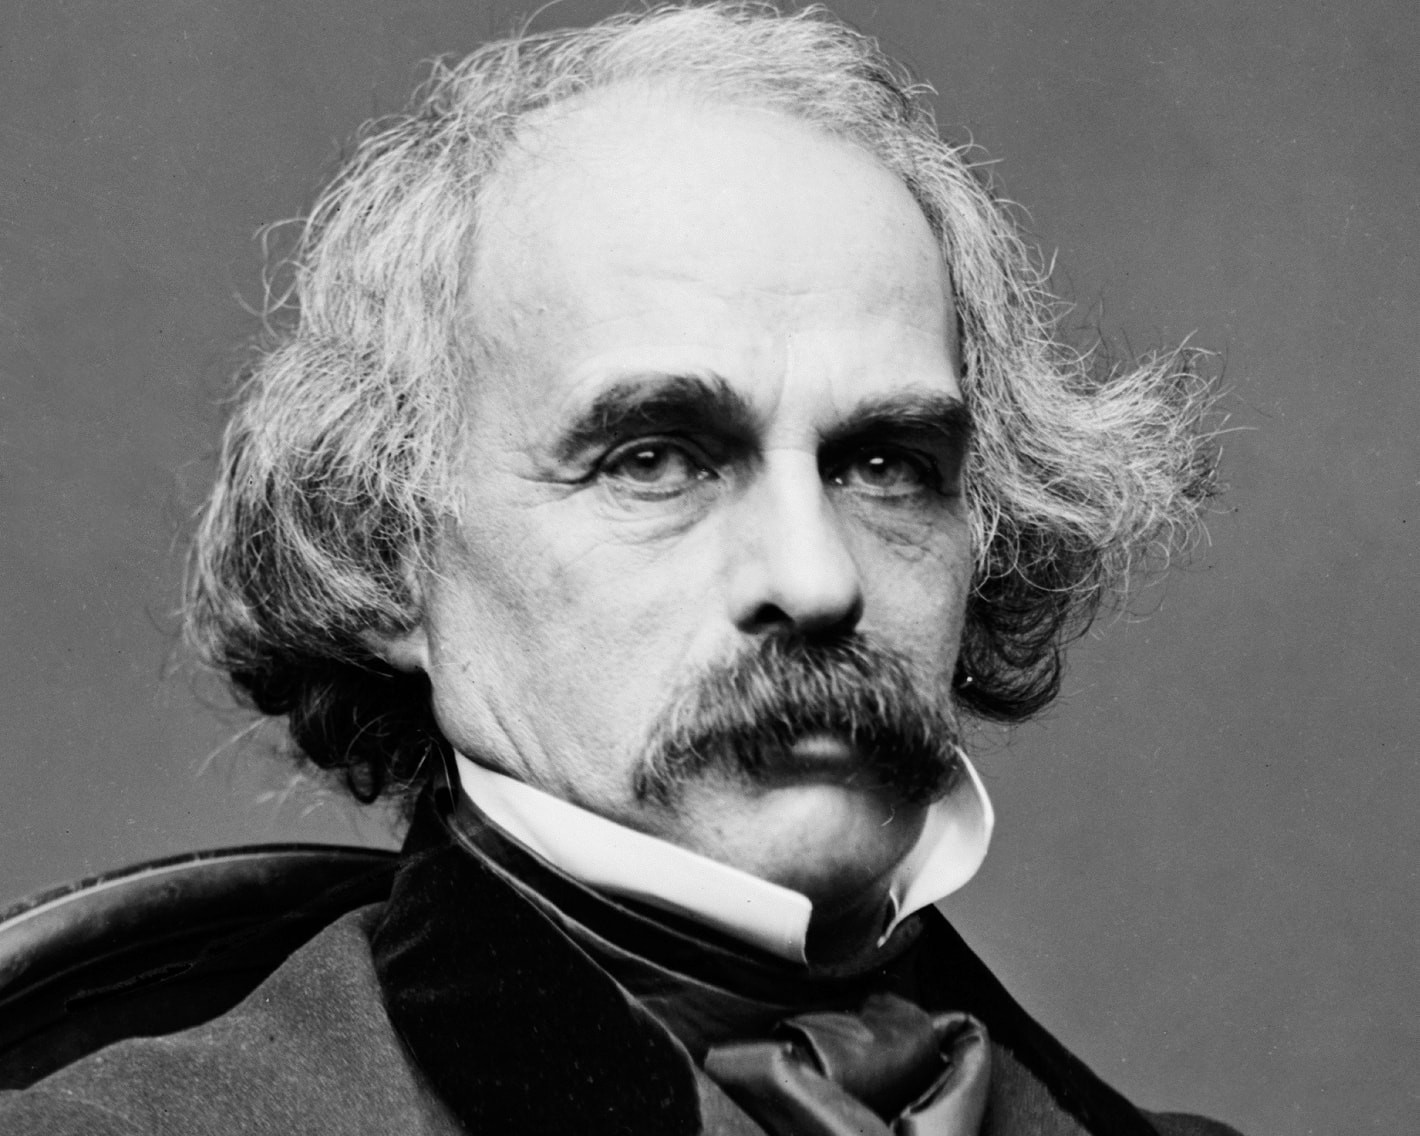 the effects of secret sin in the writings of nathaniel hawthorne essay 'the scarlet letter' by nathaniel hawthorne  of his so zealously hidden sin so strongly is the scarlet letter rooted in every load of secret guilt in his.